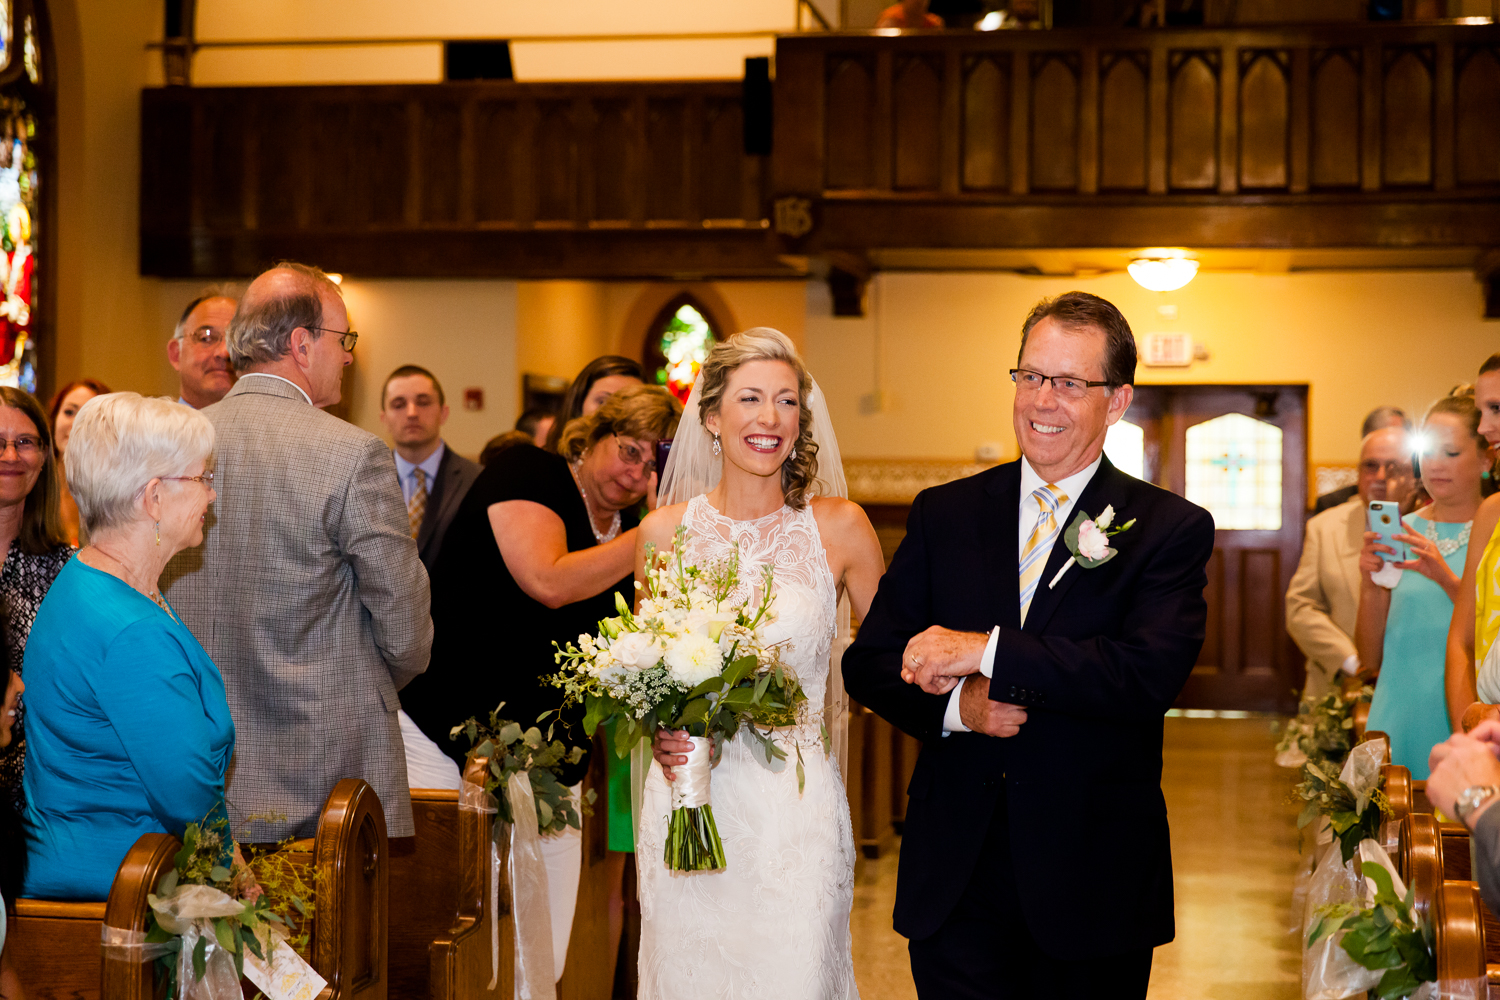 The bride walks down the aisle with her father on her wedding day.